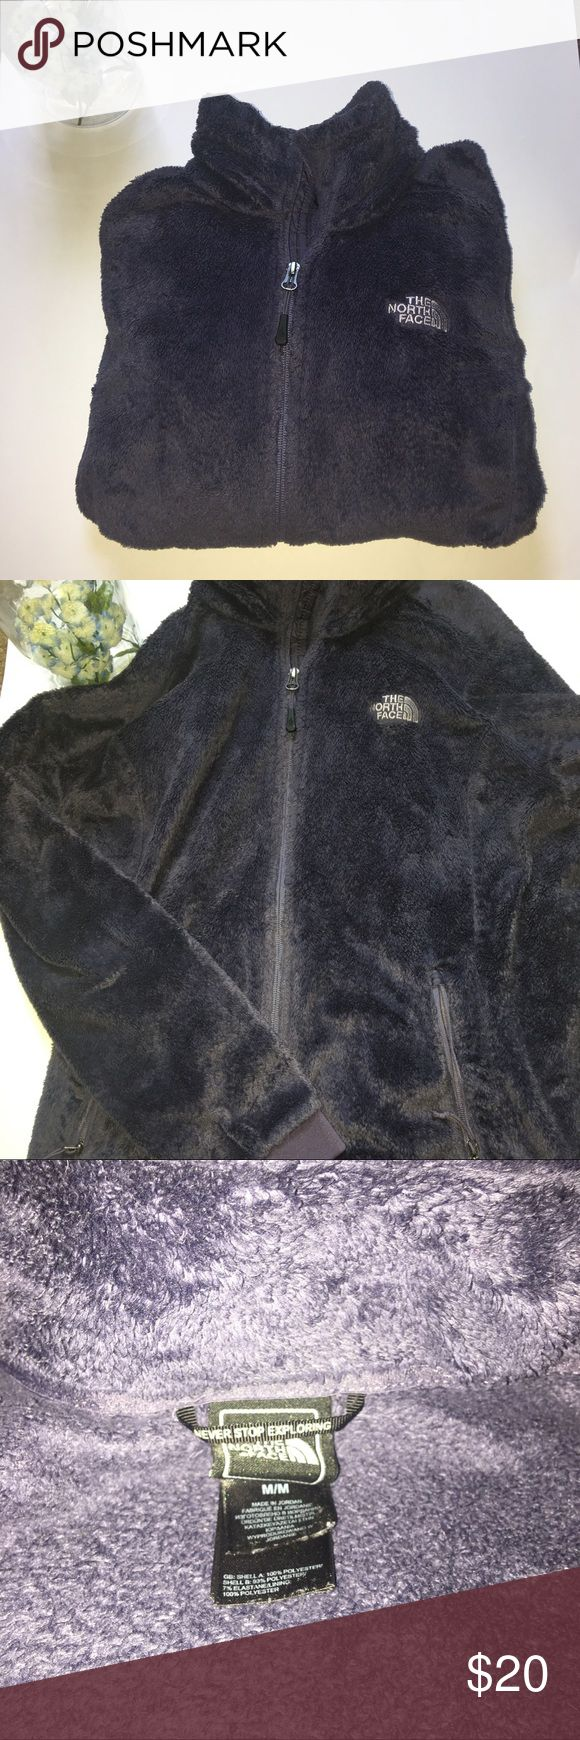 North face fuzzy zip up! Purple/grey north face zip up! Used condition, priced to sell! Woman's size medium! North Face Jackets & Coats